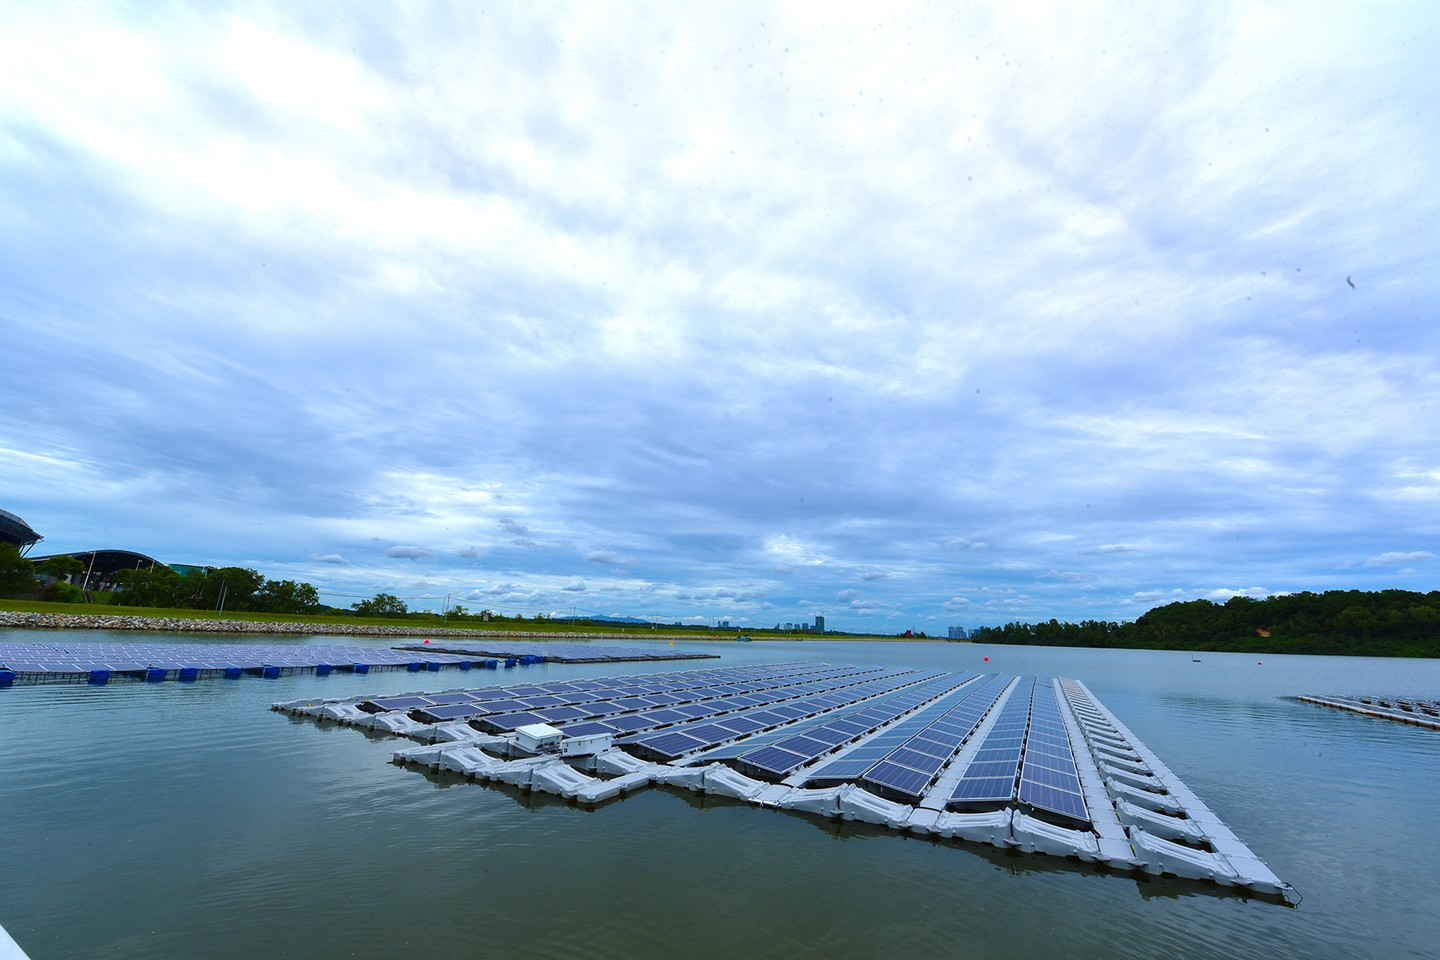 The one-hectare floating solar PV test bed on Tengeh Reservoir.